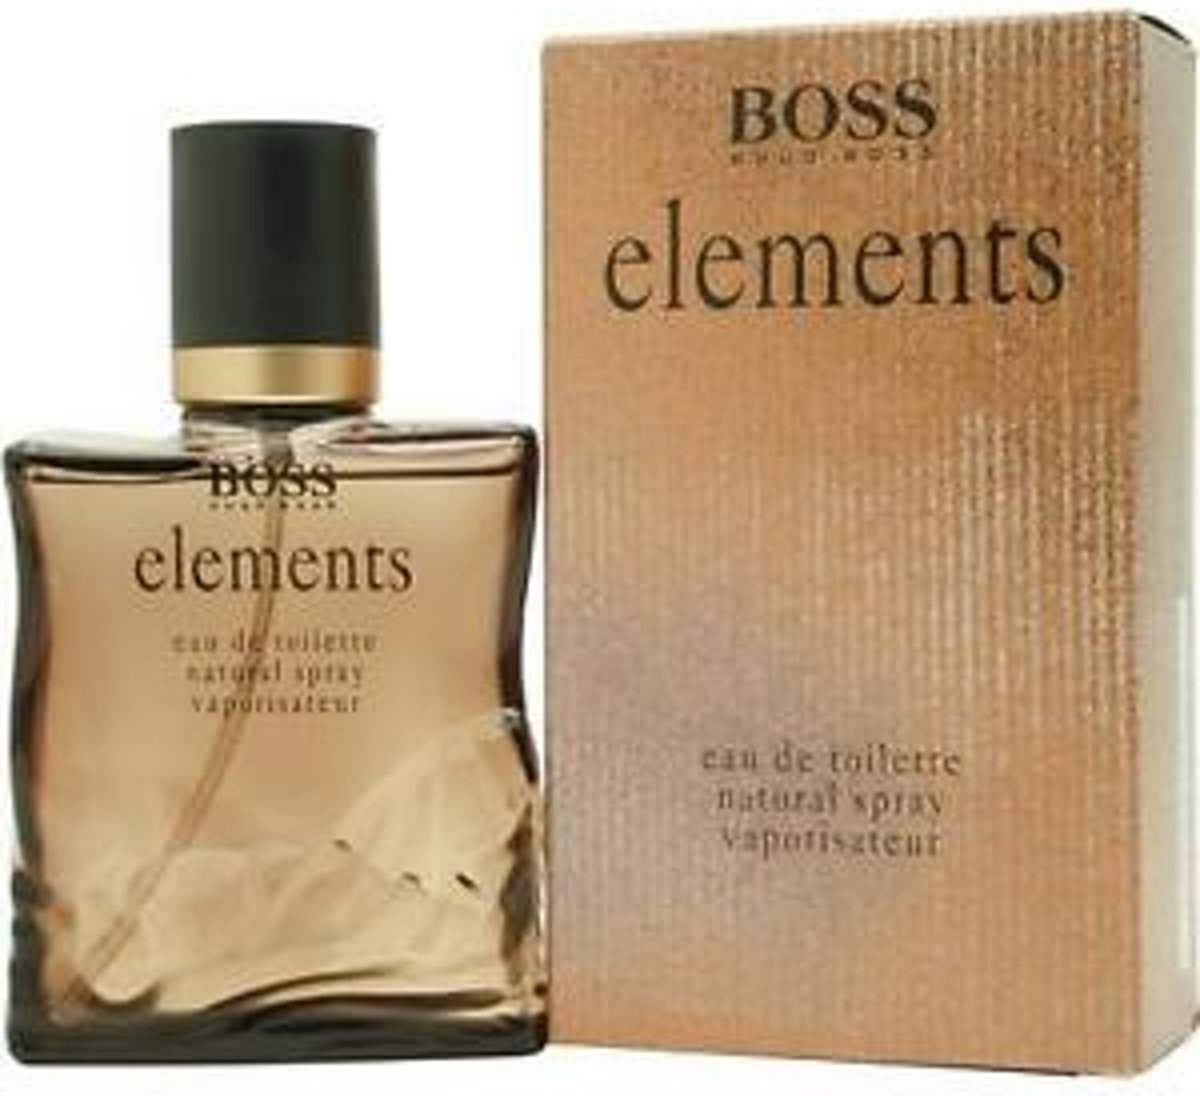 Elements - Hugo Boss Eau de Toilette Spray 50 ML